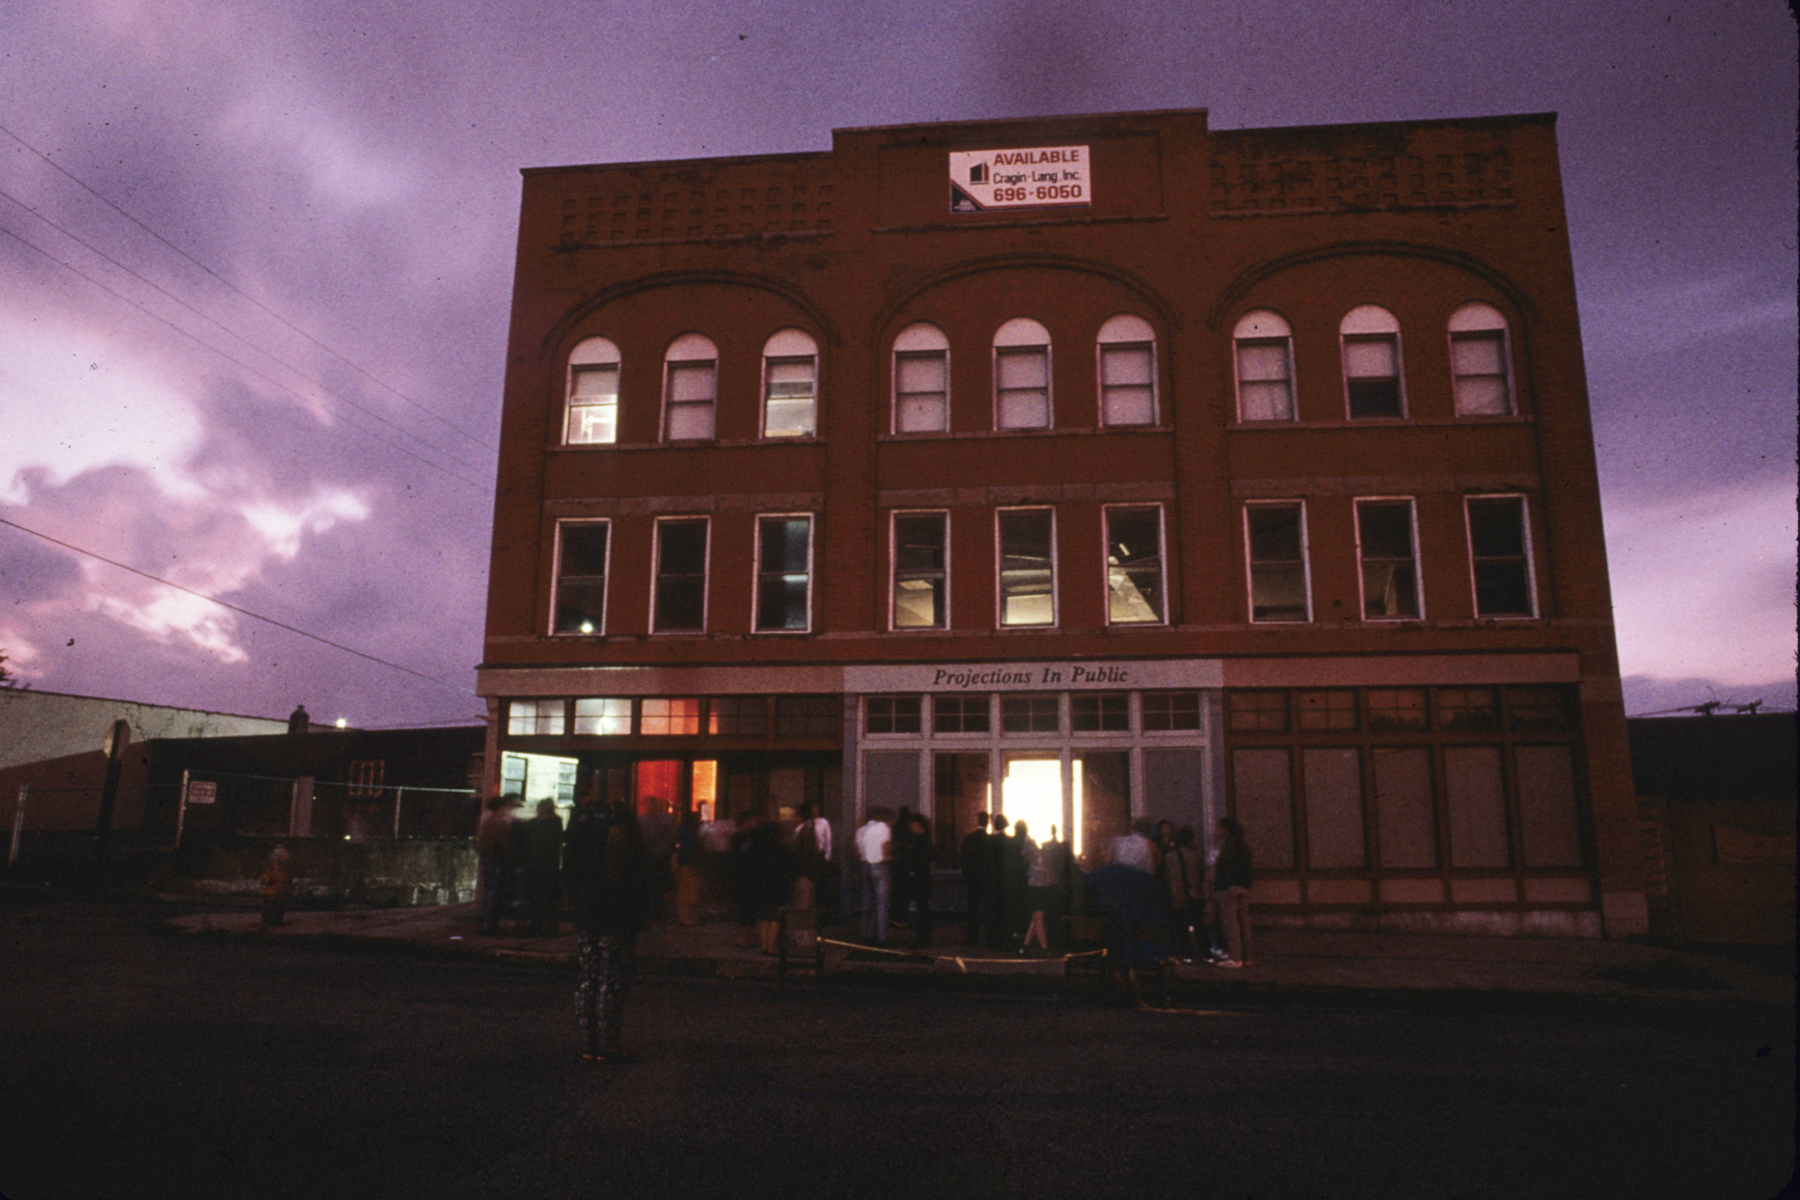 Projections in Public: Cleveland, curated by Karen Atkinson